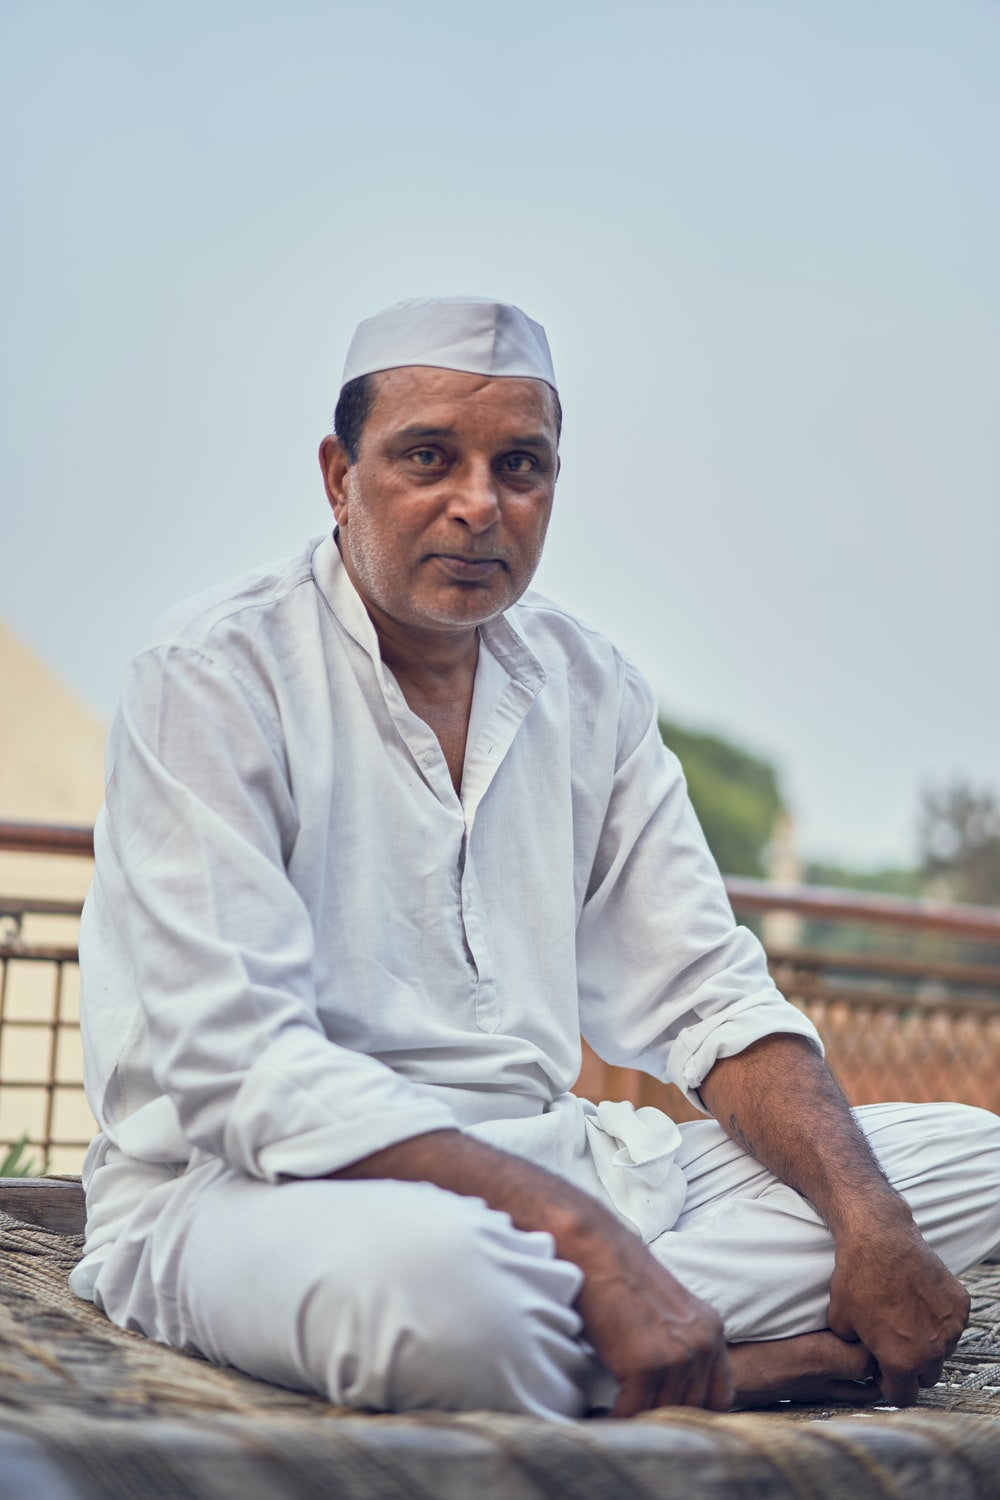 man in white thobe sitting on brown wooden bench during daytime